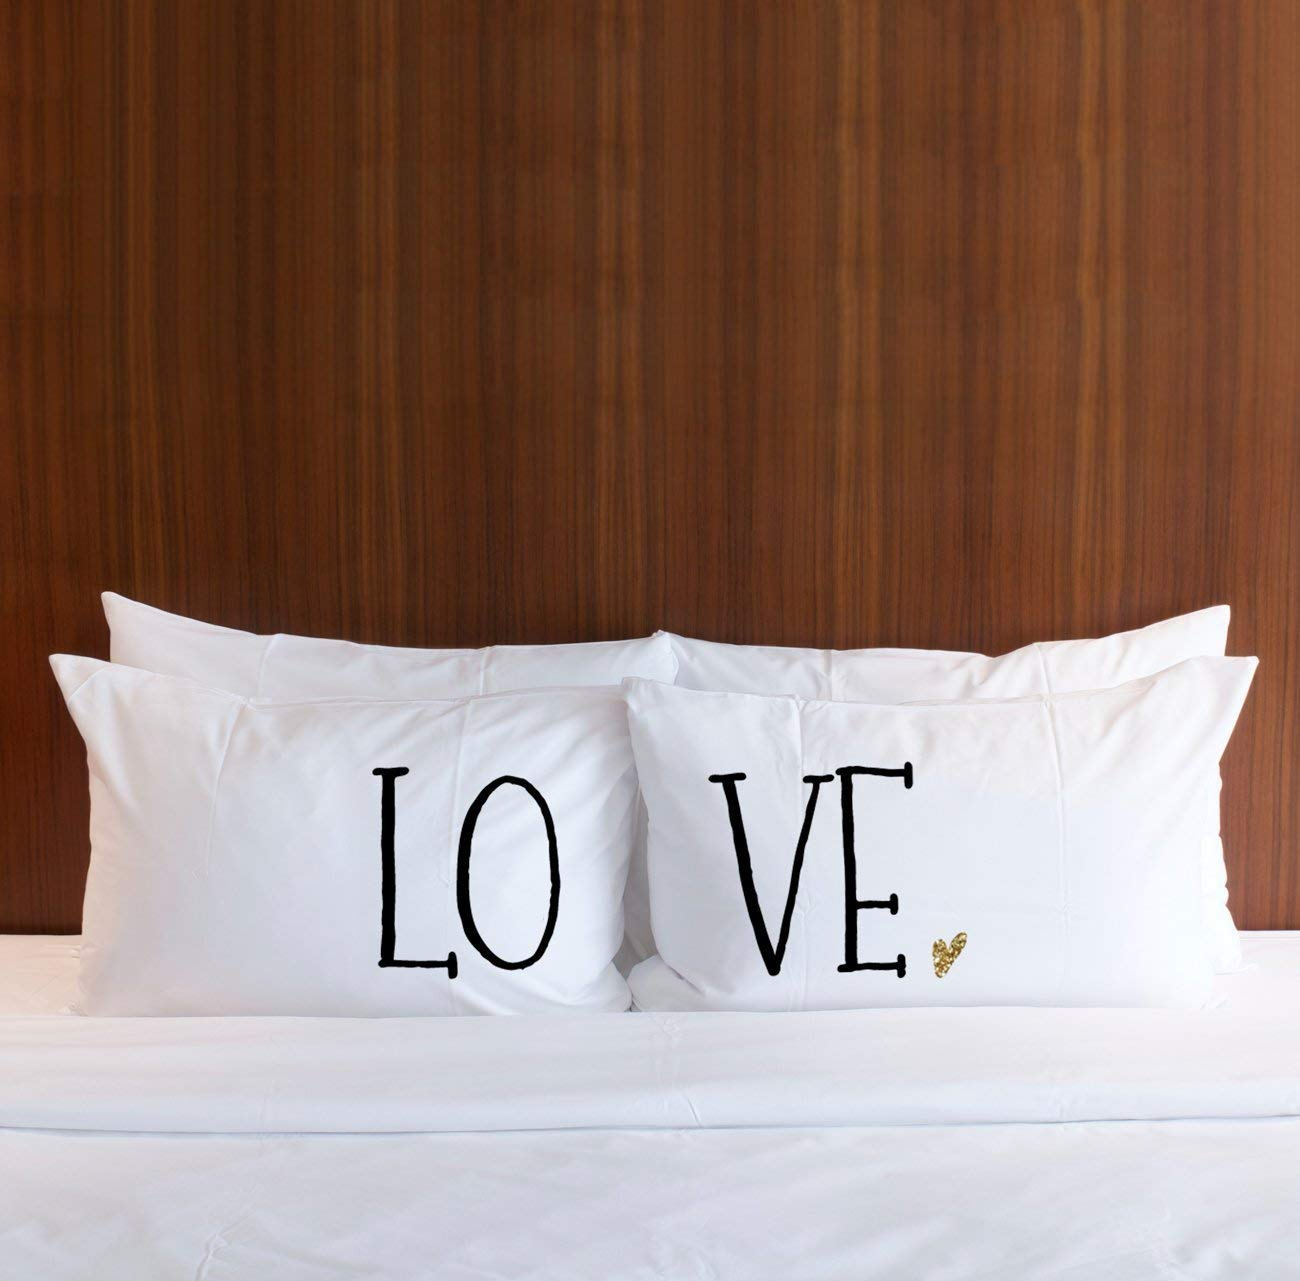 LOVE Gold Glitter Accented Decor for Bedroom Gift for Bride Wedding Bridal Shower Anniversary for Him or Her Pillowcases for Couples